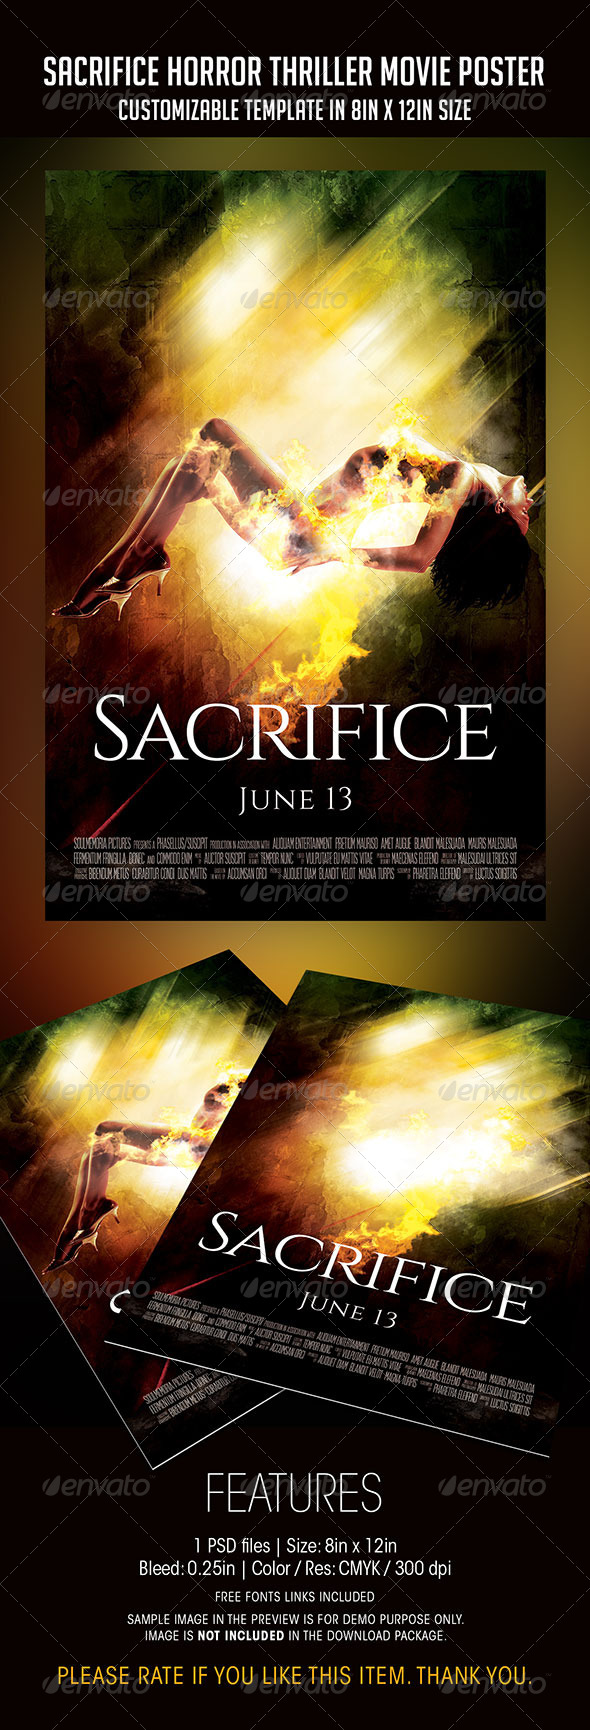 GraphicRiver Sacrifice Horror Thriller Movie Poster 7516216